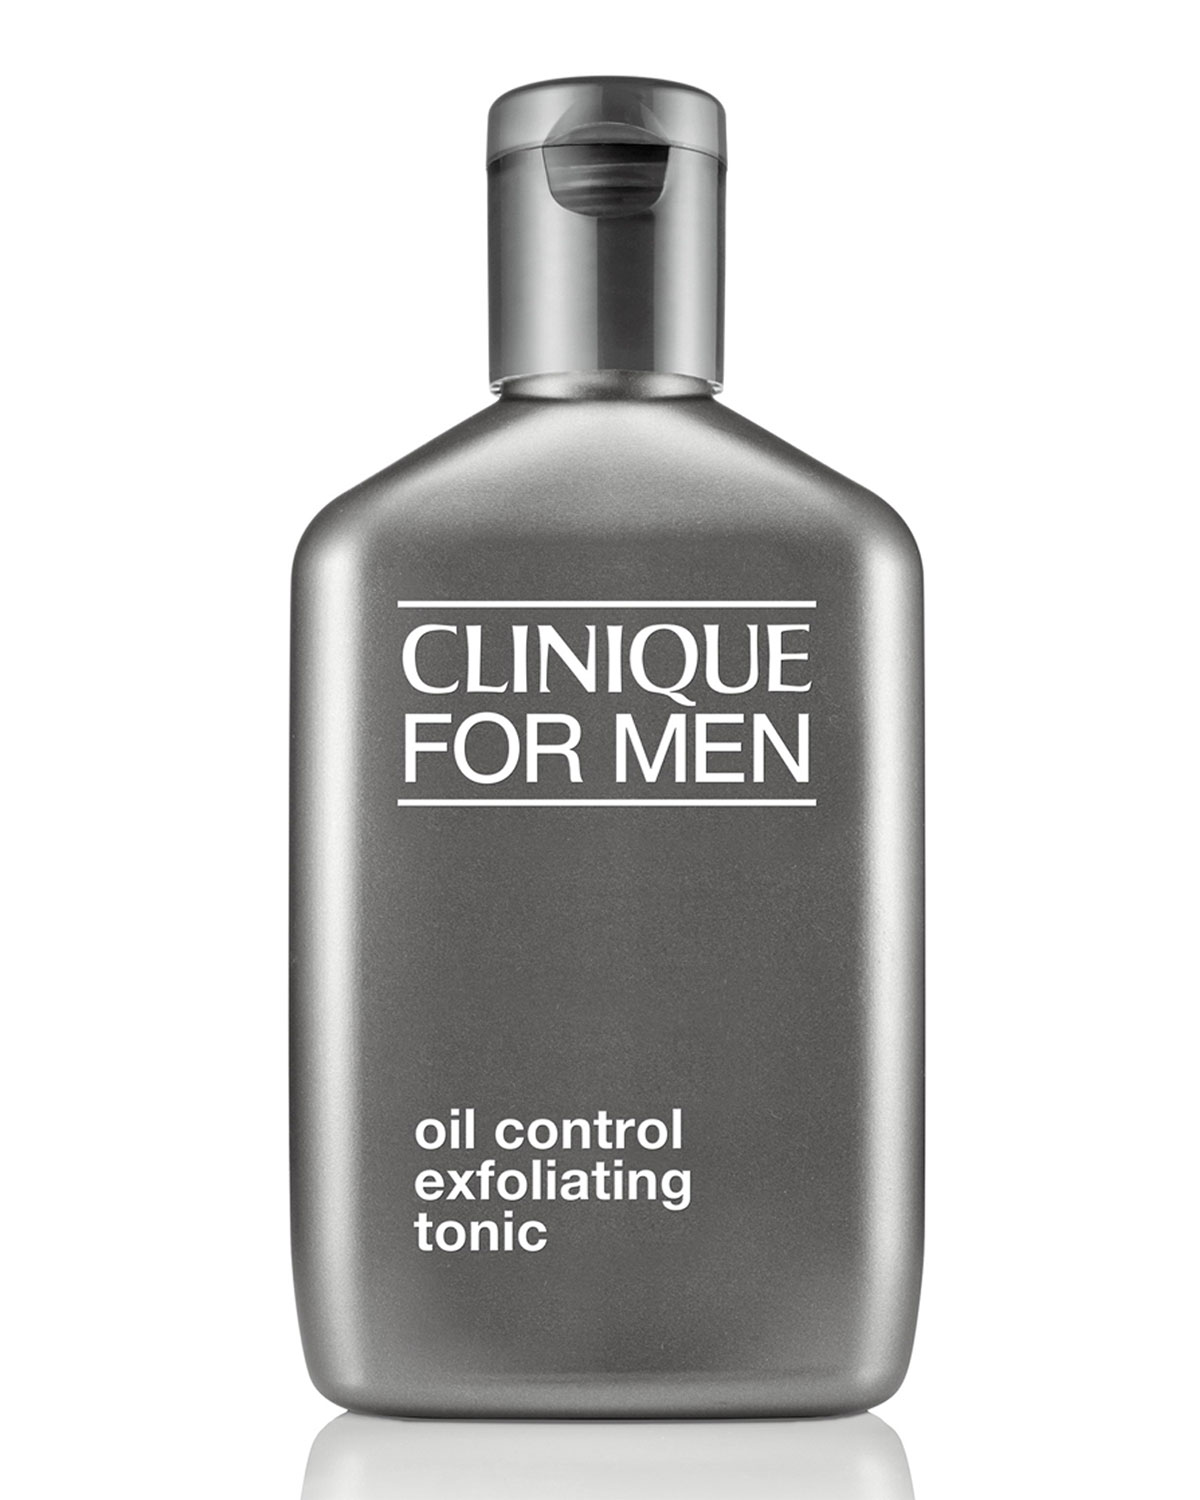 For Men Oil Control Exfoliating Tonic 6.7 Fl. Oz., 3.5